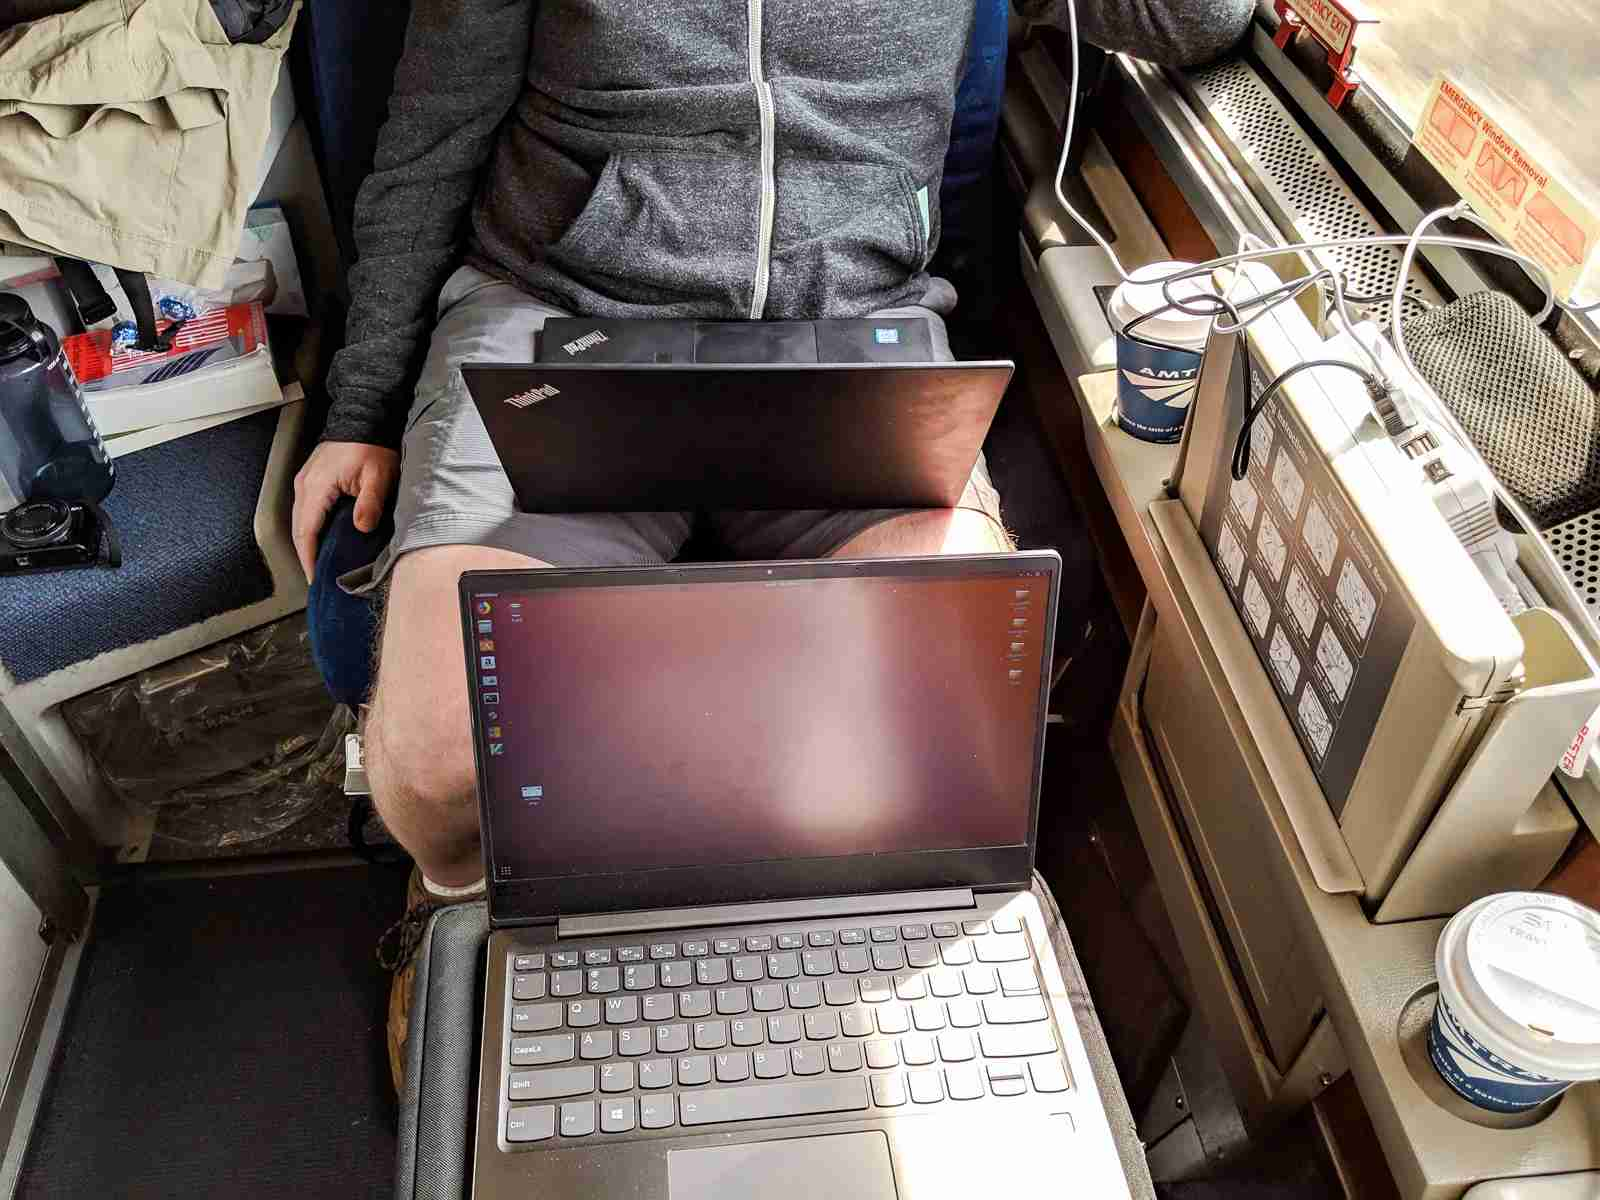 It was comfortable for both of us to work on our laptops in the roomette.